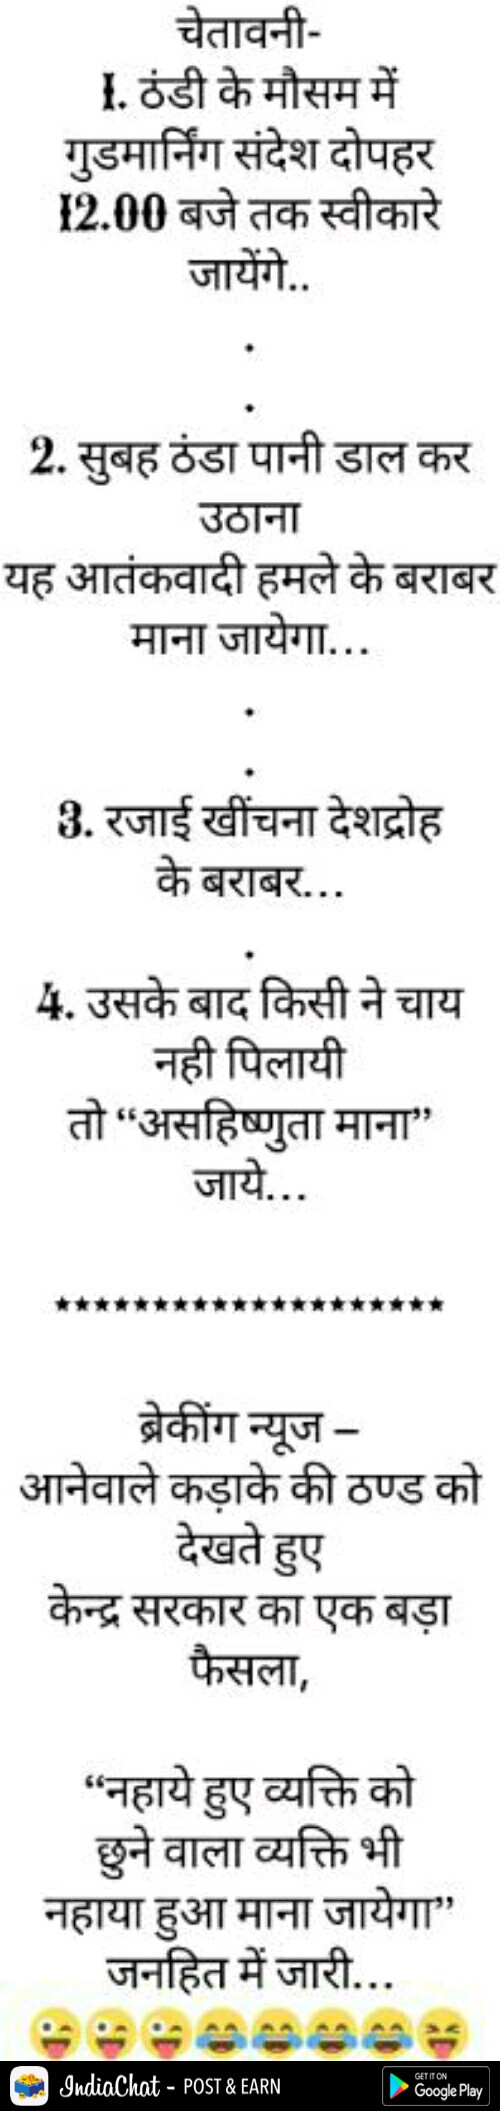 Pin by Narendra Pal Singh on Jokes Funny images laughter